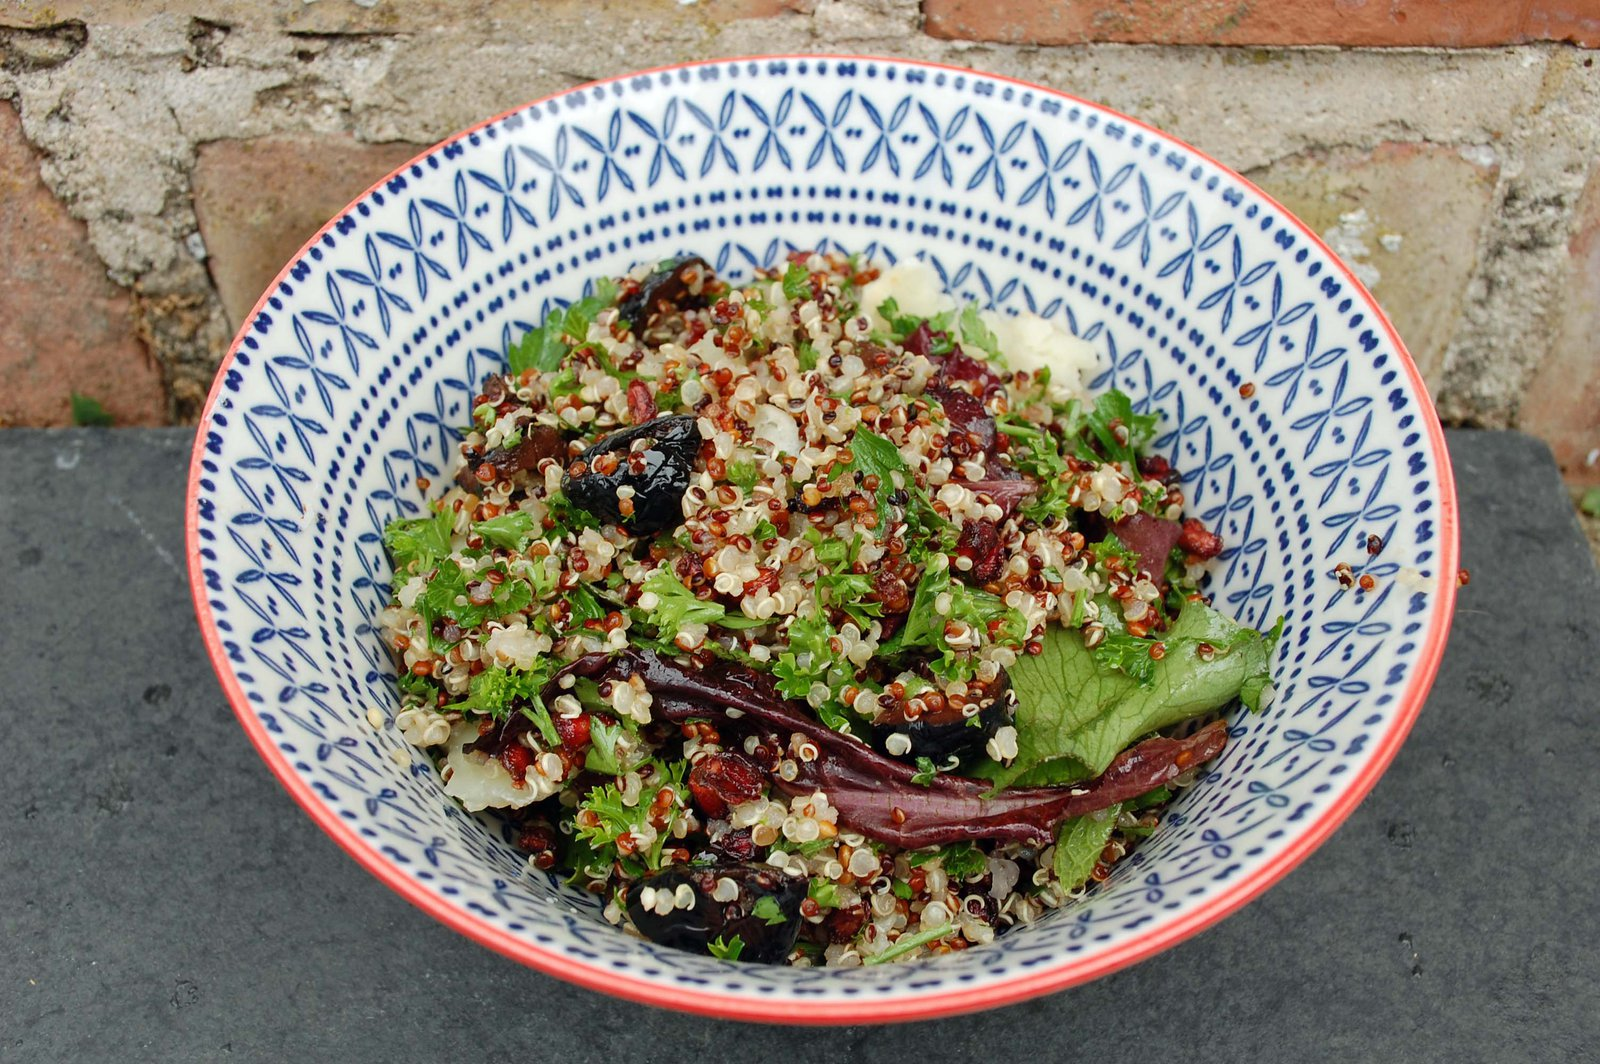 Quinoa Salad With Pomegranate Seeds, Olives And Parsley